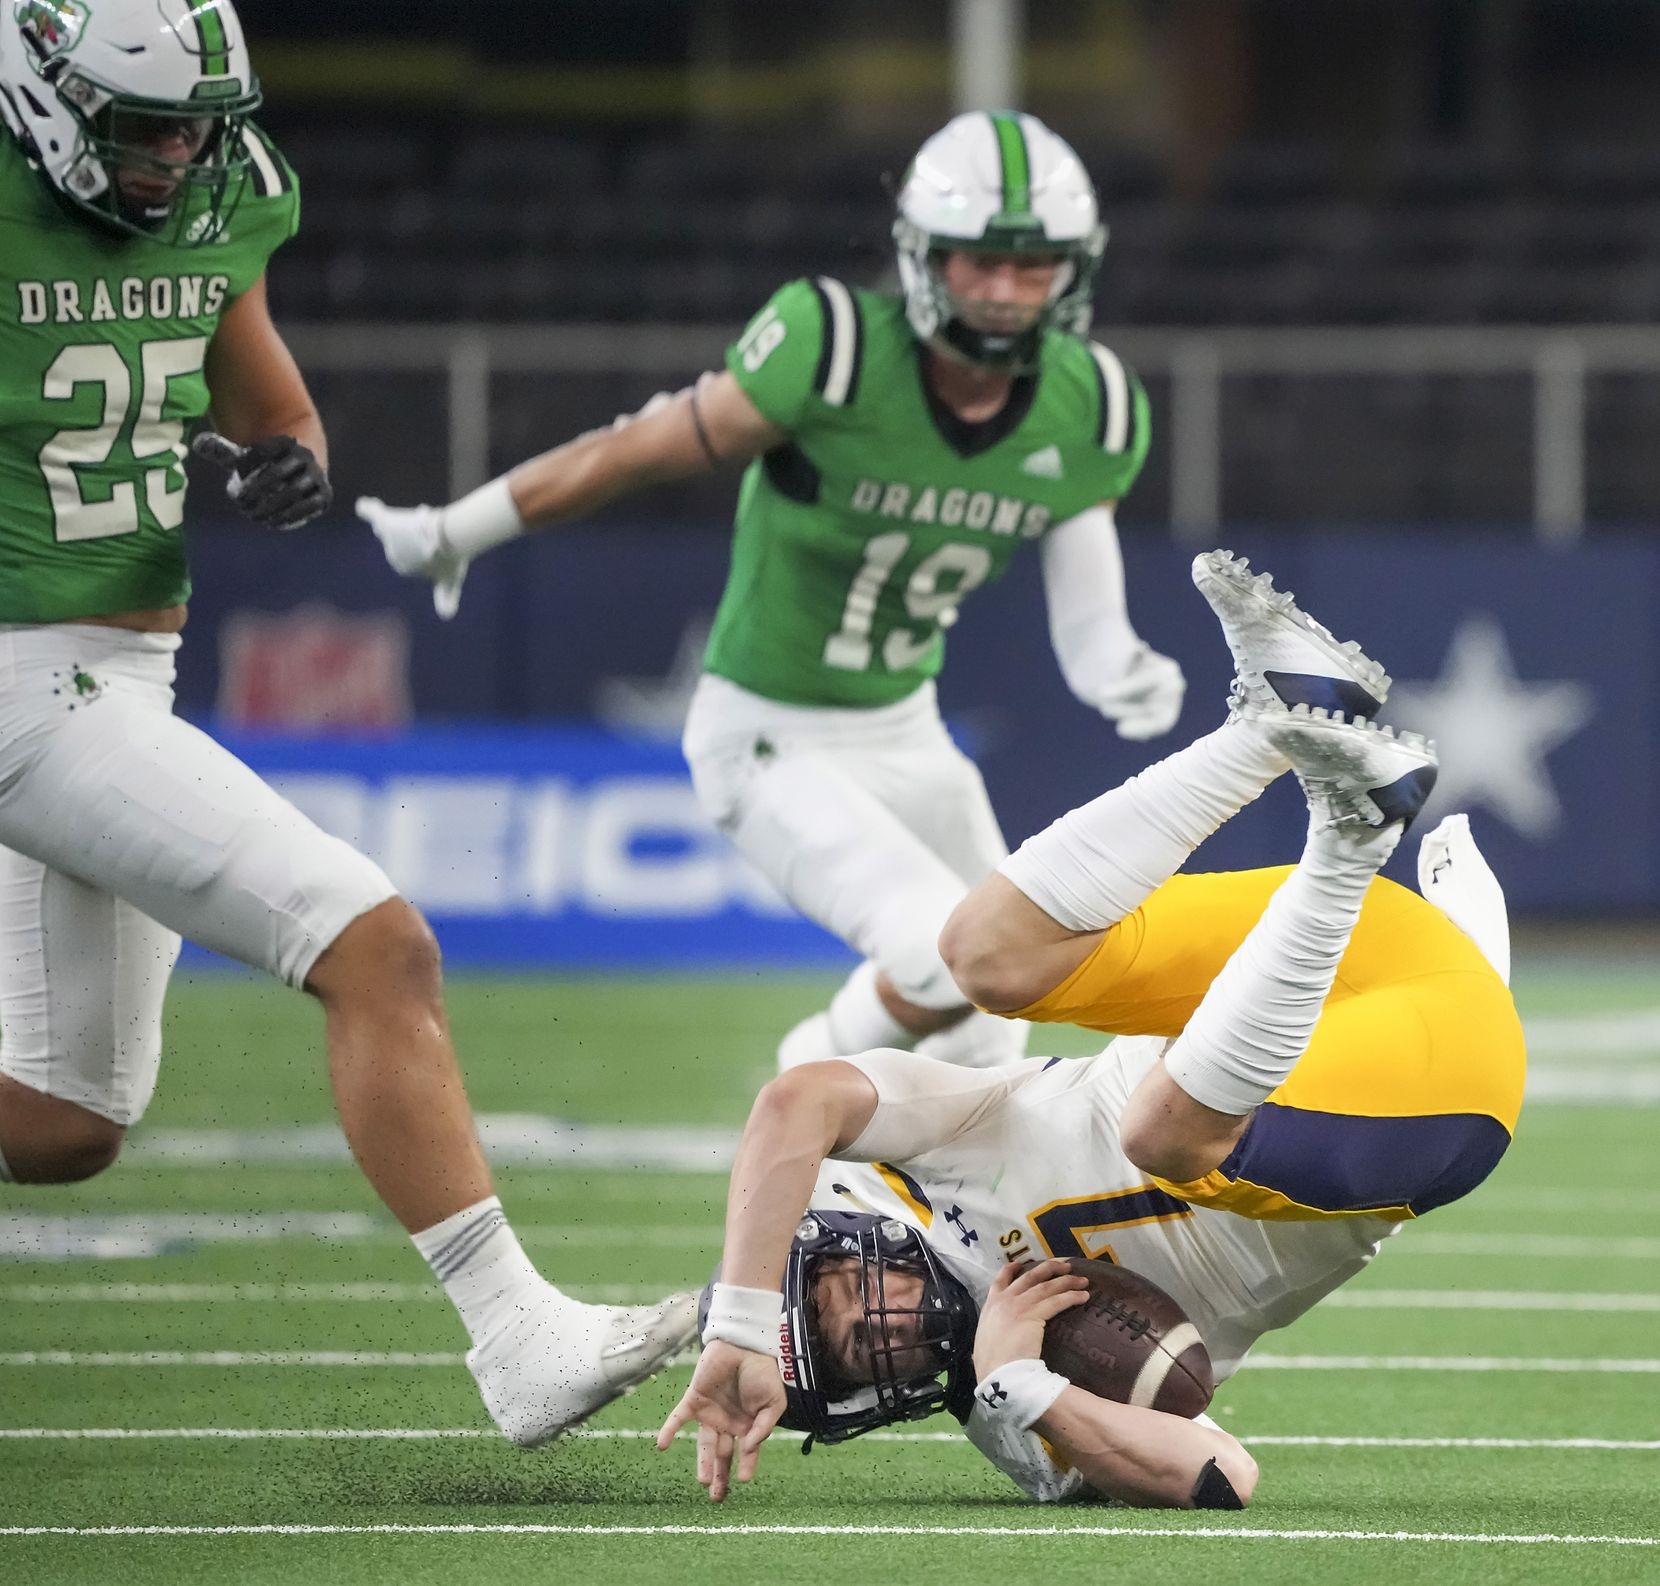 Highland Park quarterback  Brennan Storer (7) tumbles to the turf as he is upended in front of Southlake Carroll defensive lineman Barrett Baker (25) and defensive back Logan Anderson (19) during the first half of a high school football game at AT&T Stadium on Thursday, Aug. 26, 2021, in Arlington.